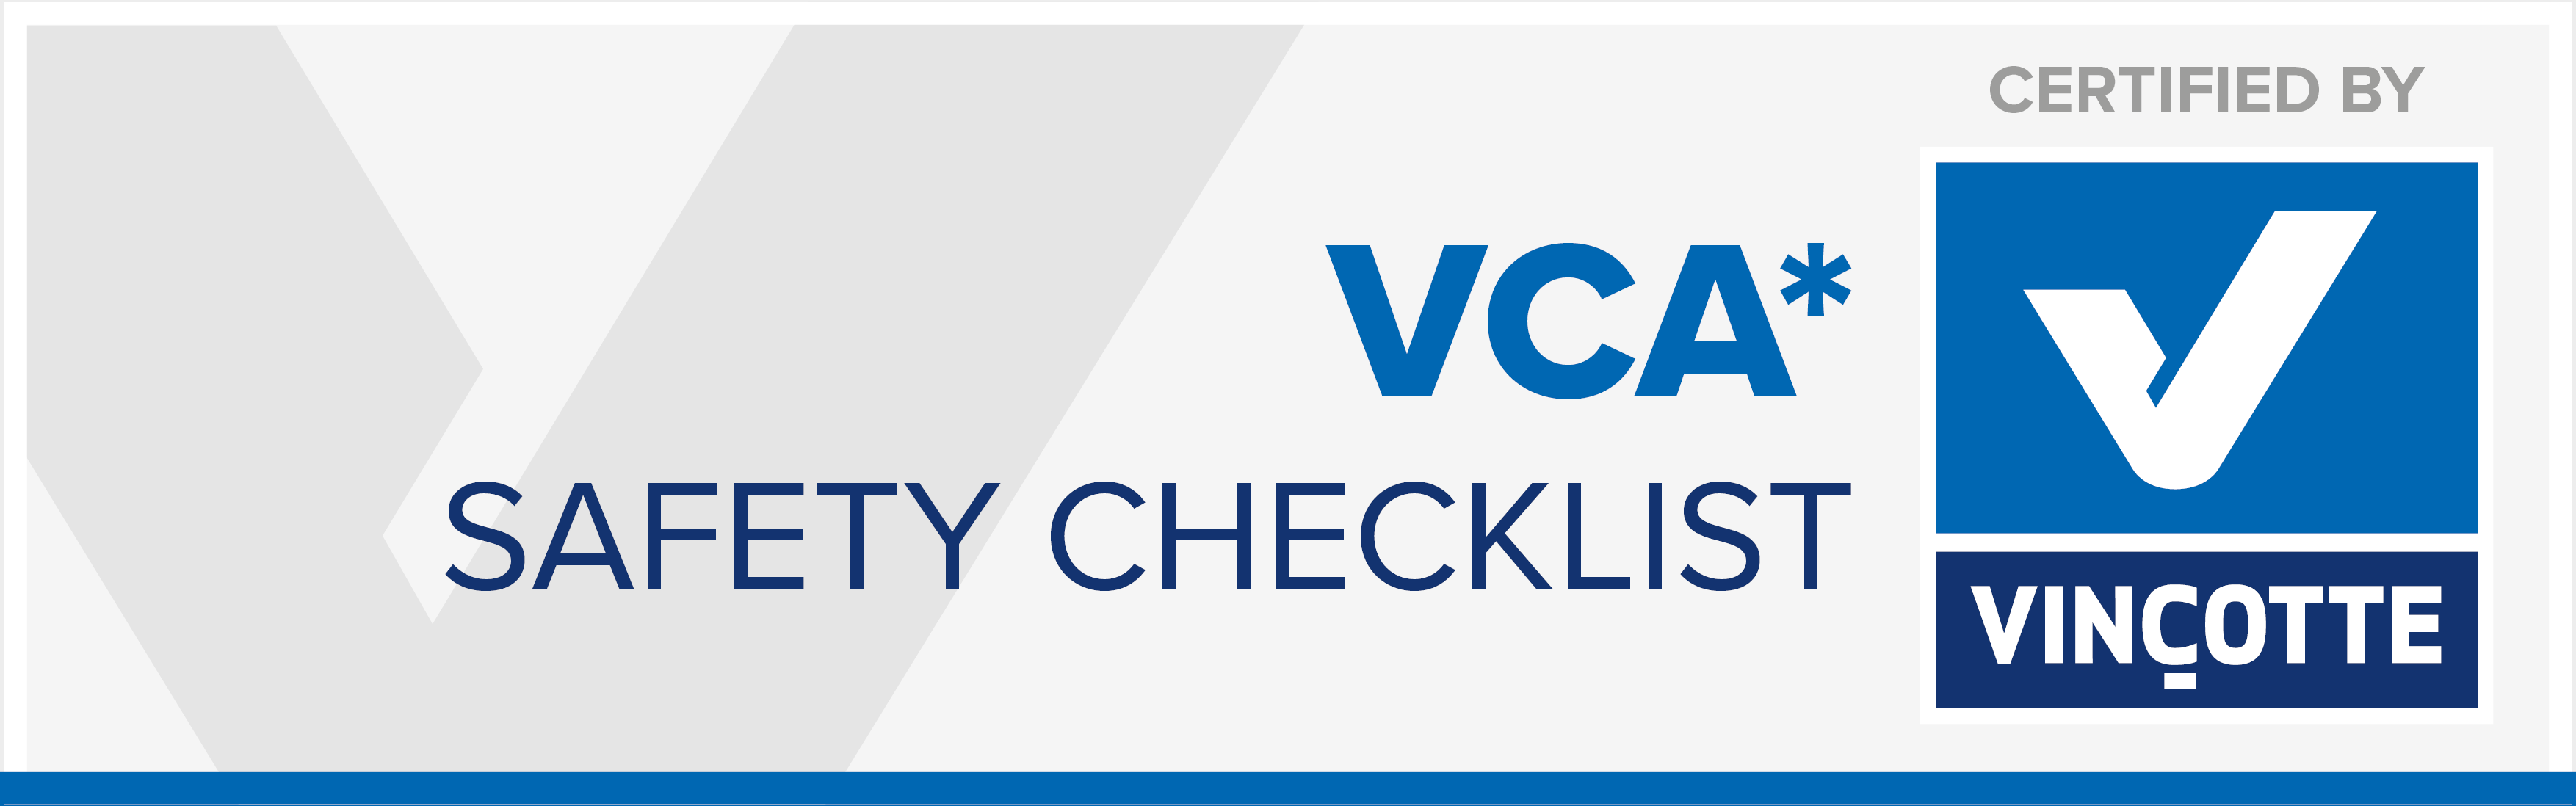 VCA Safety Checklist certificaat